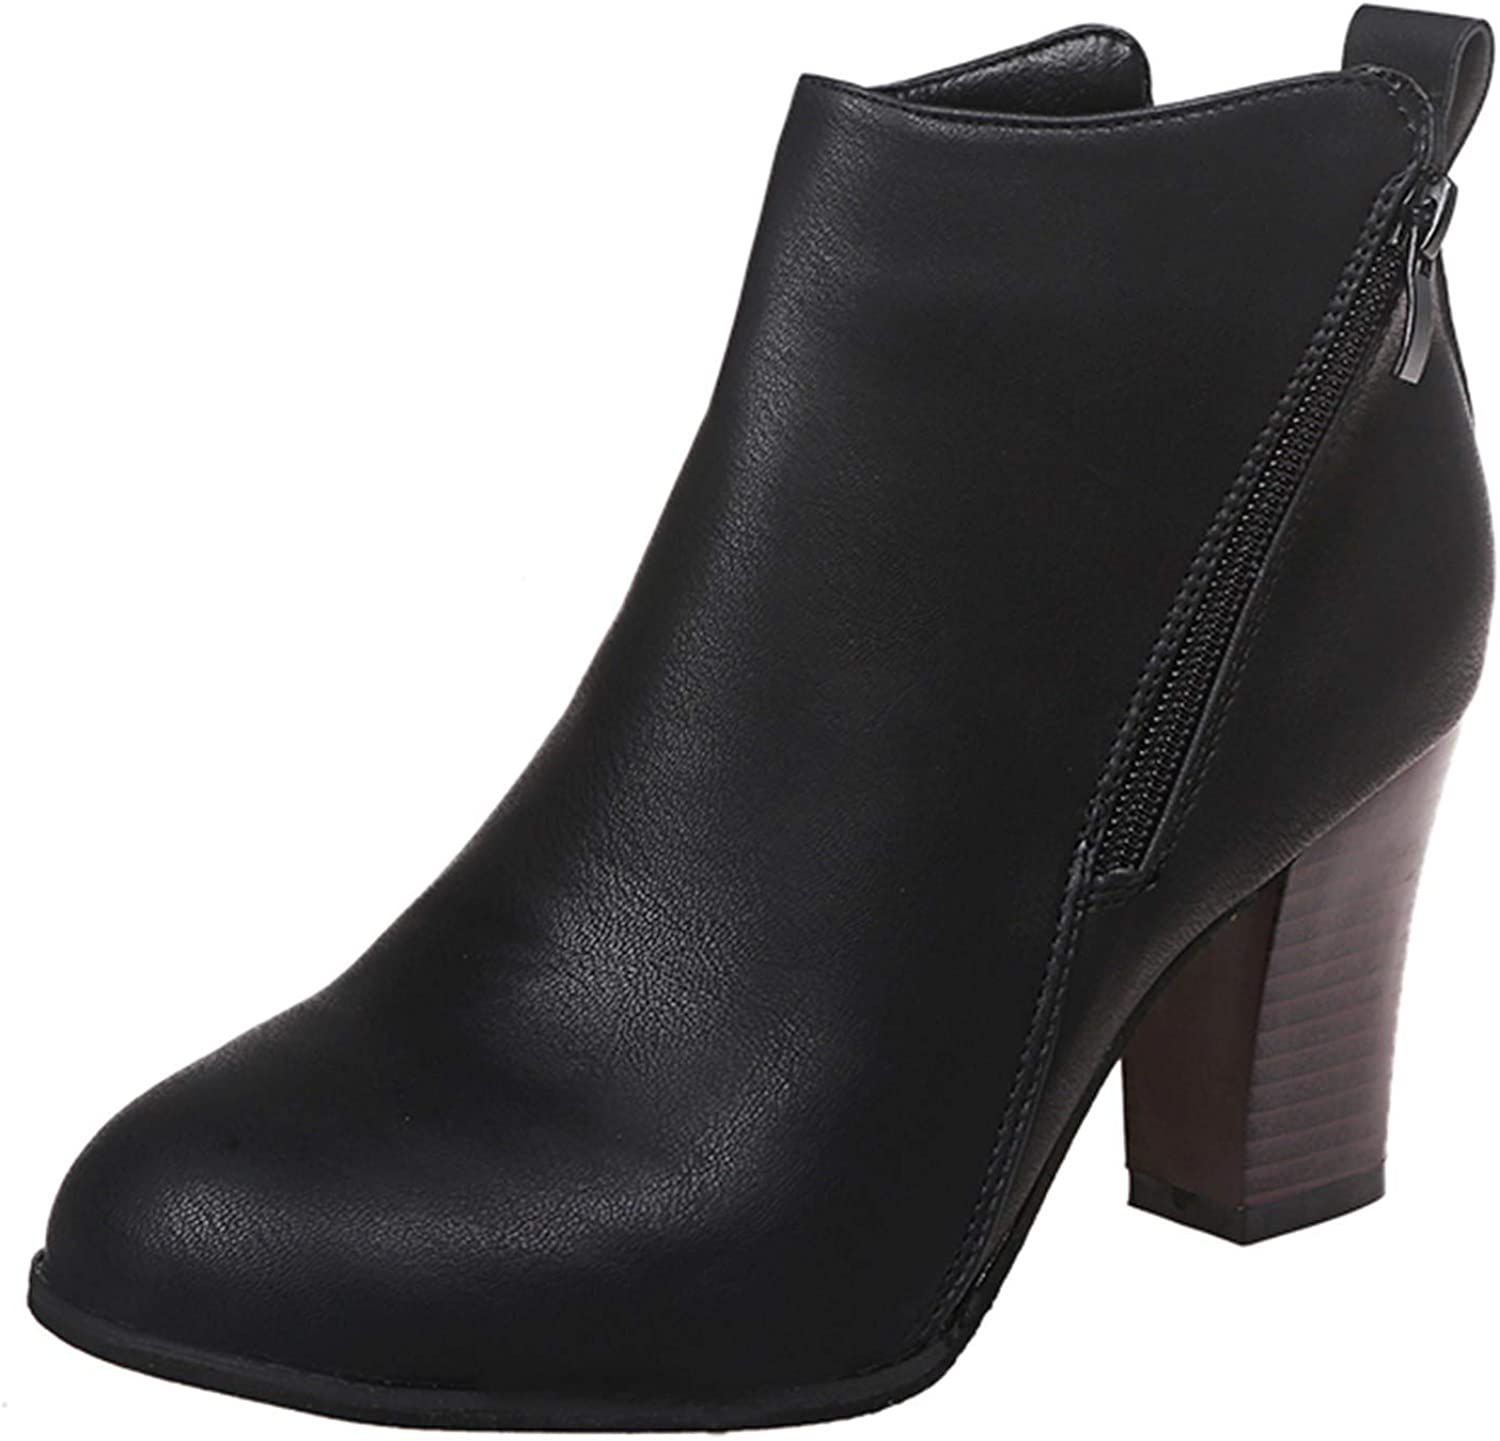 Boots For Women With Heel Round Toe Pu Calf Boots Classic Black Boots Chunky Heels High Heel Boots Womens Boots Ezeerae